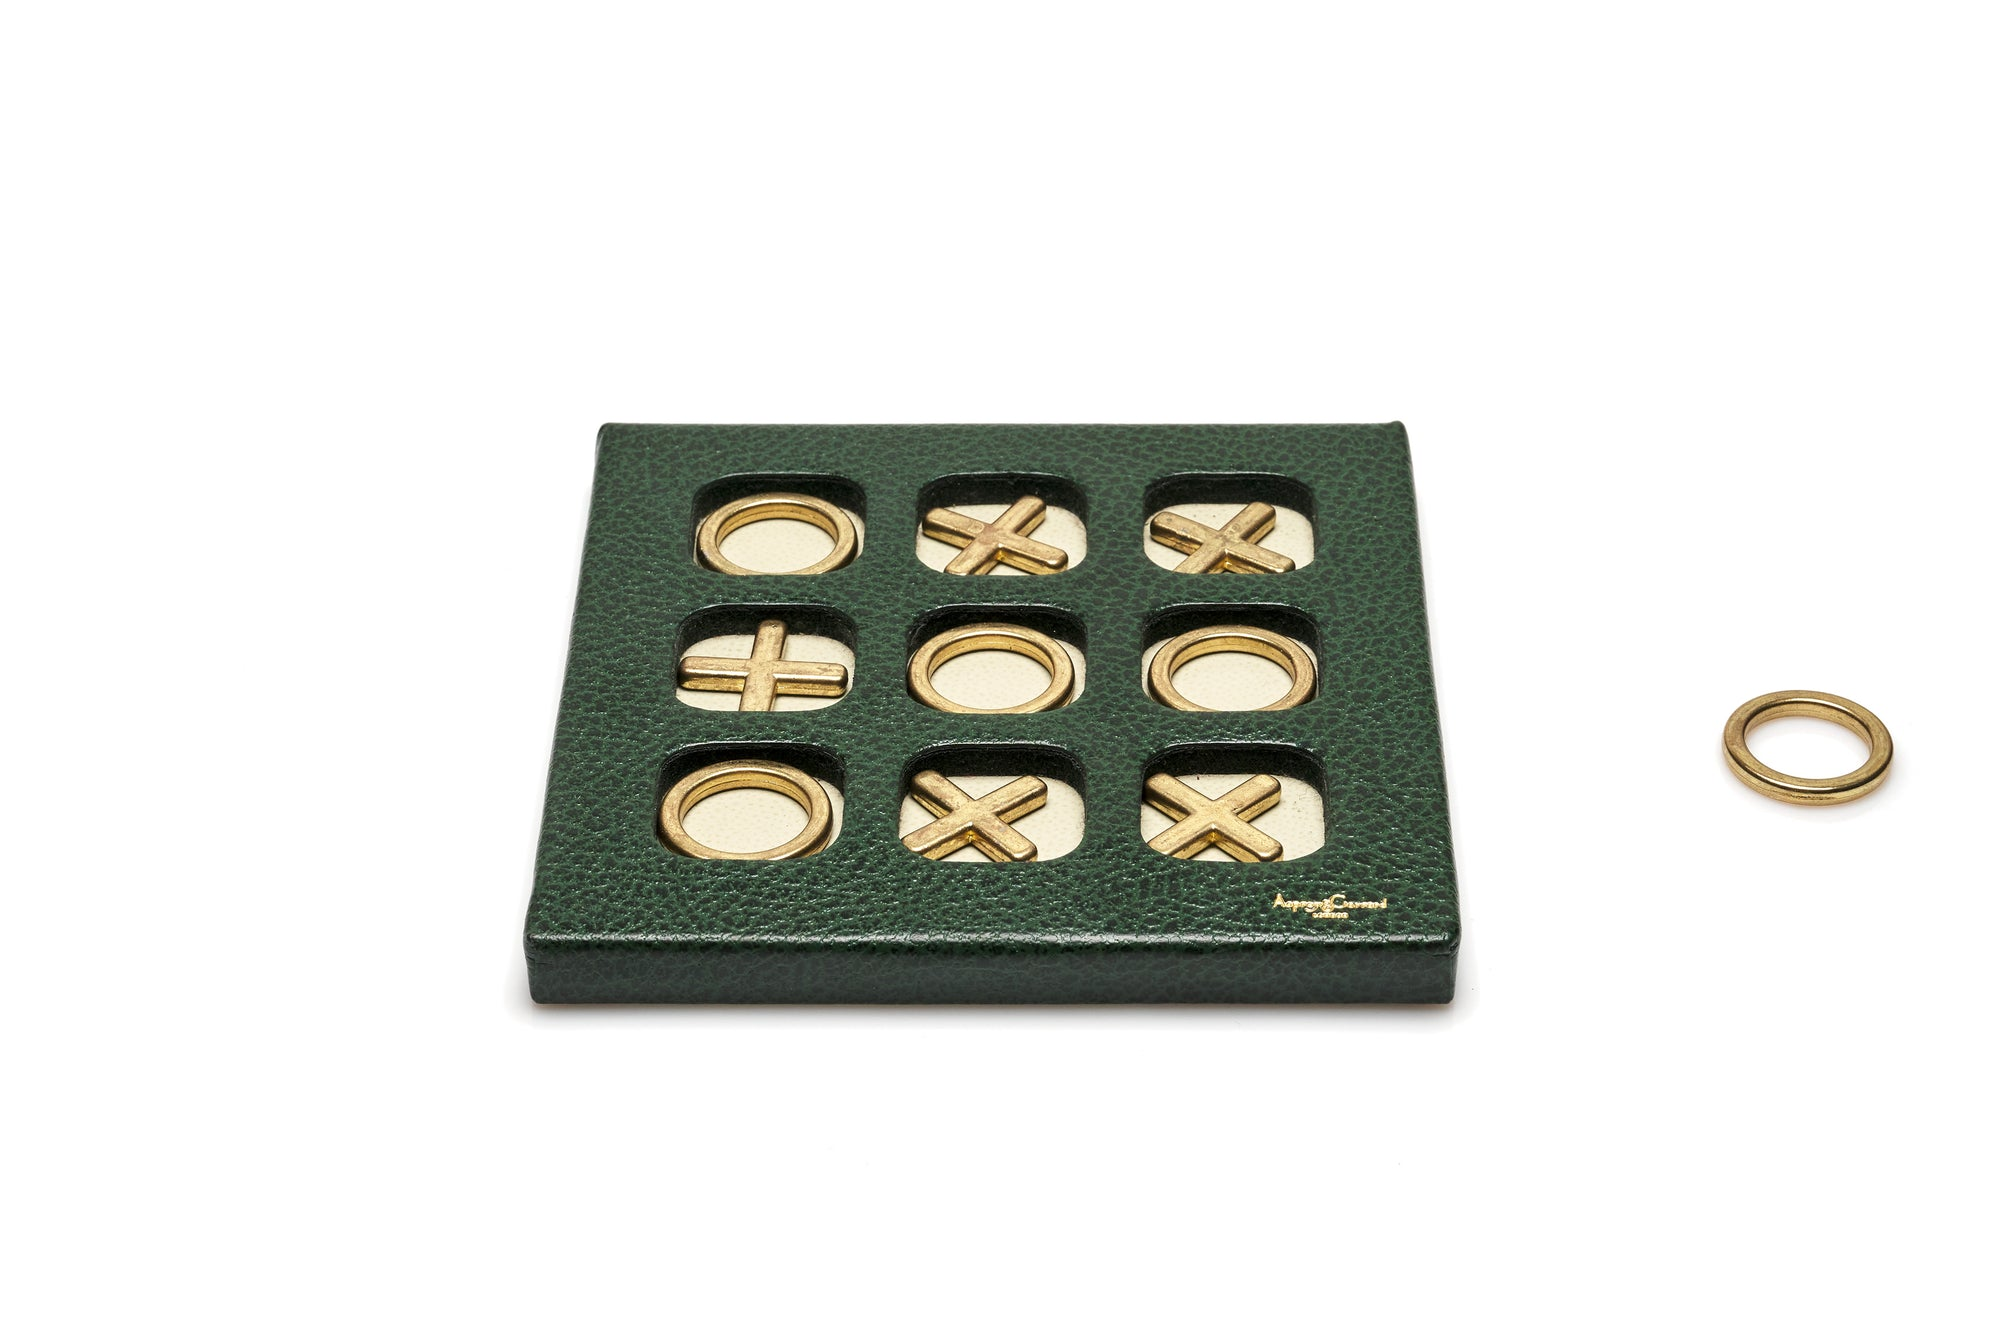 Asprey Tic-Tac-Toe Set